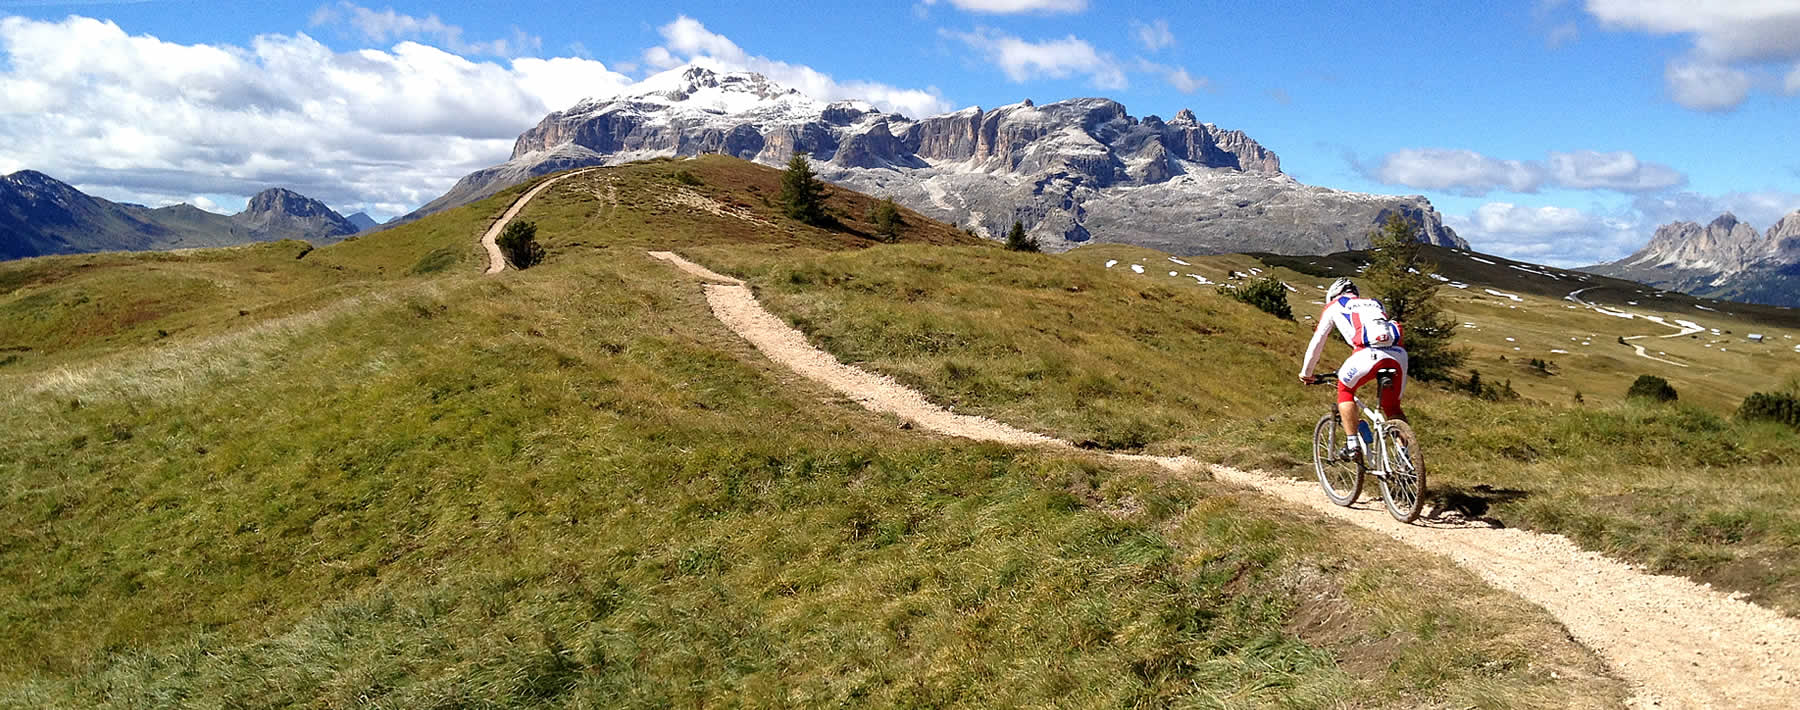 Mountain biking Alta Badia